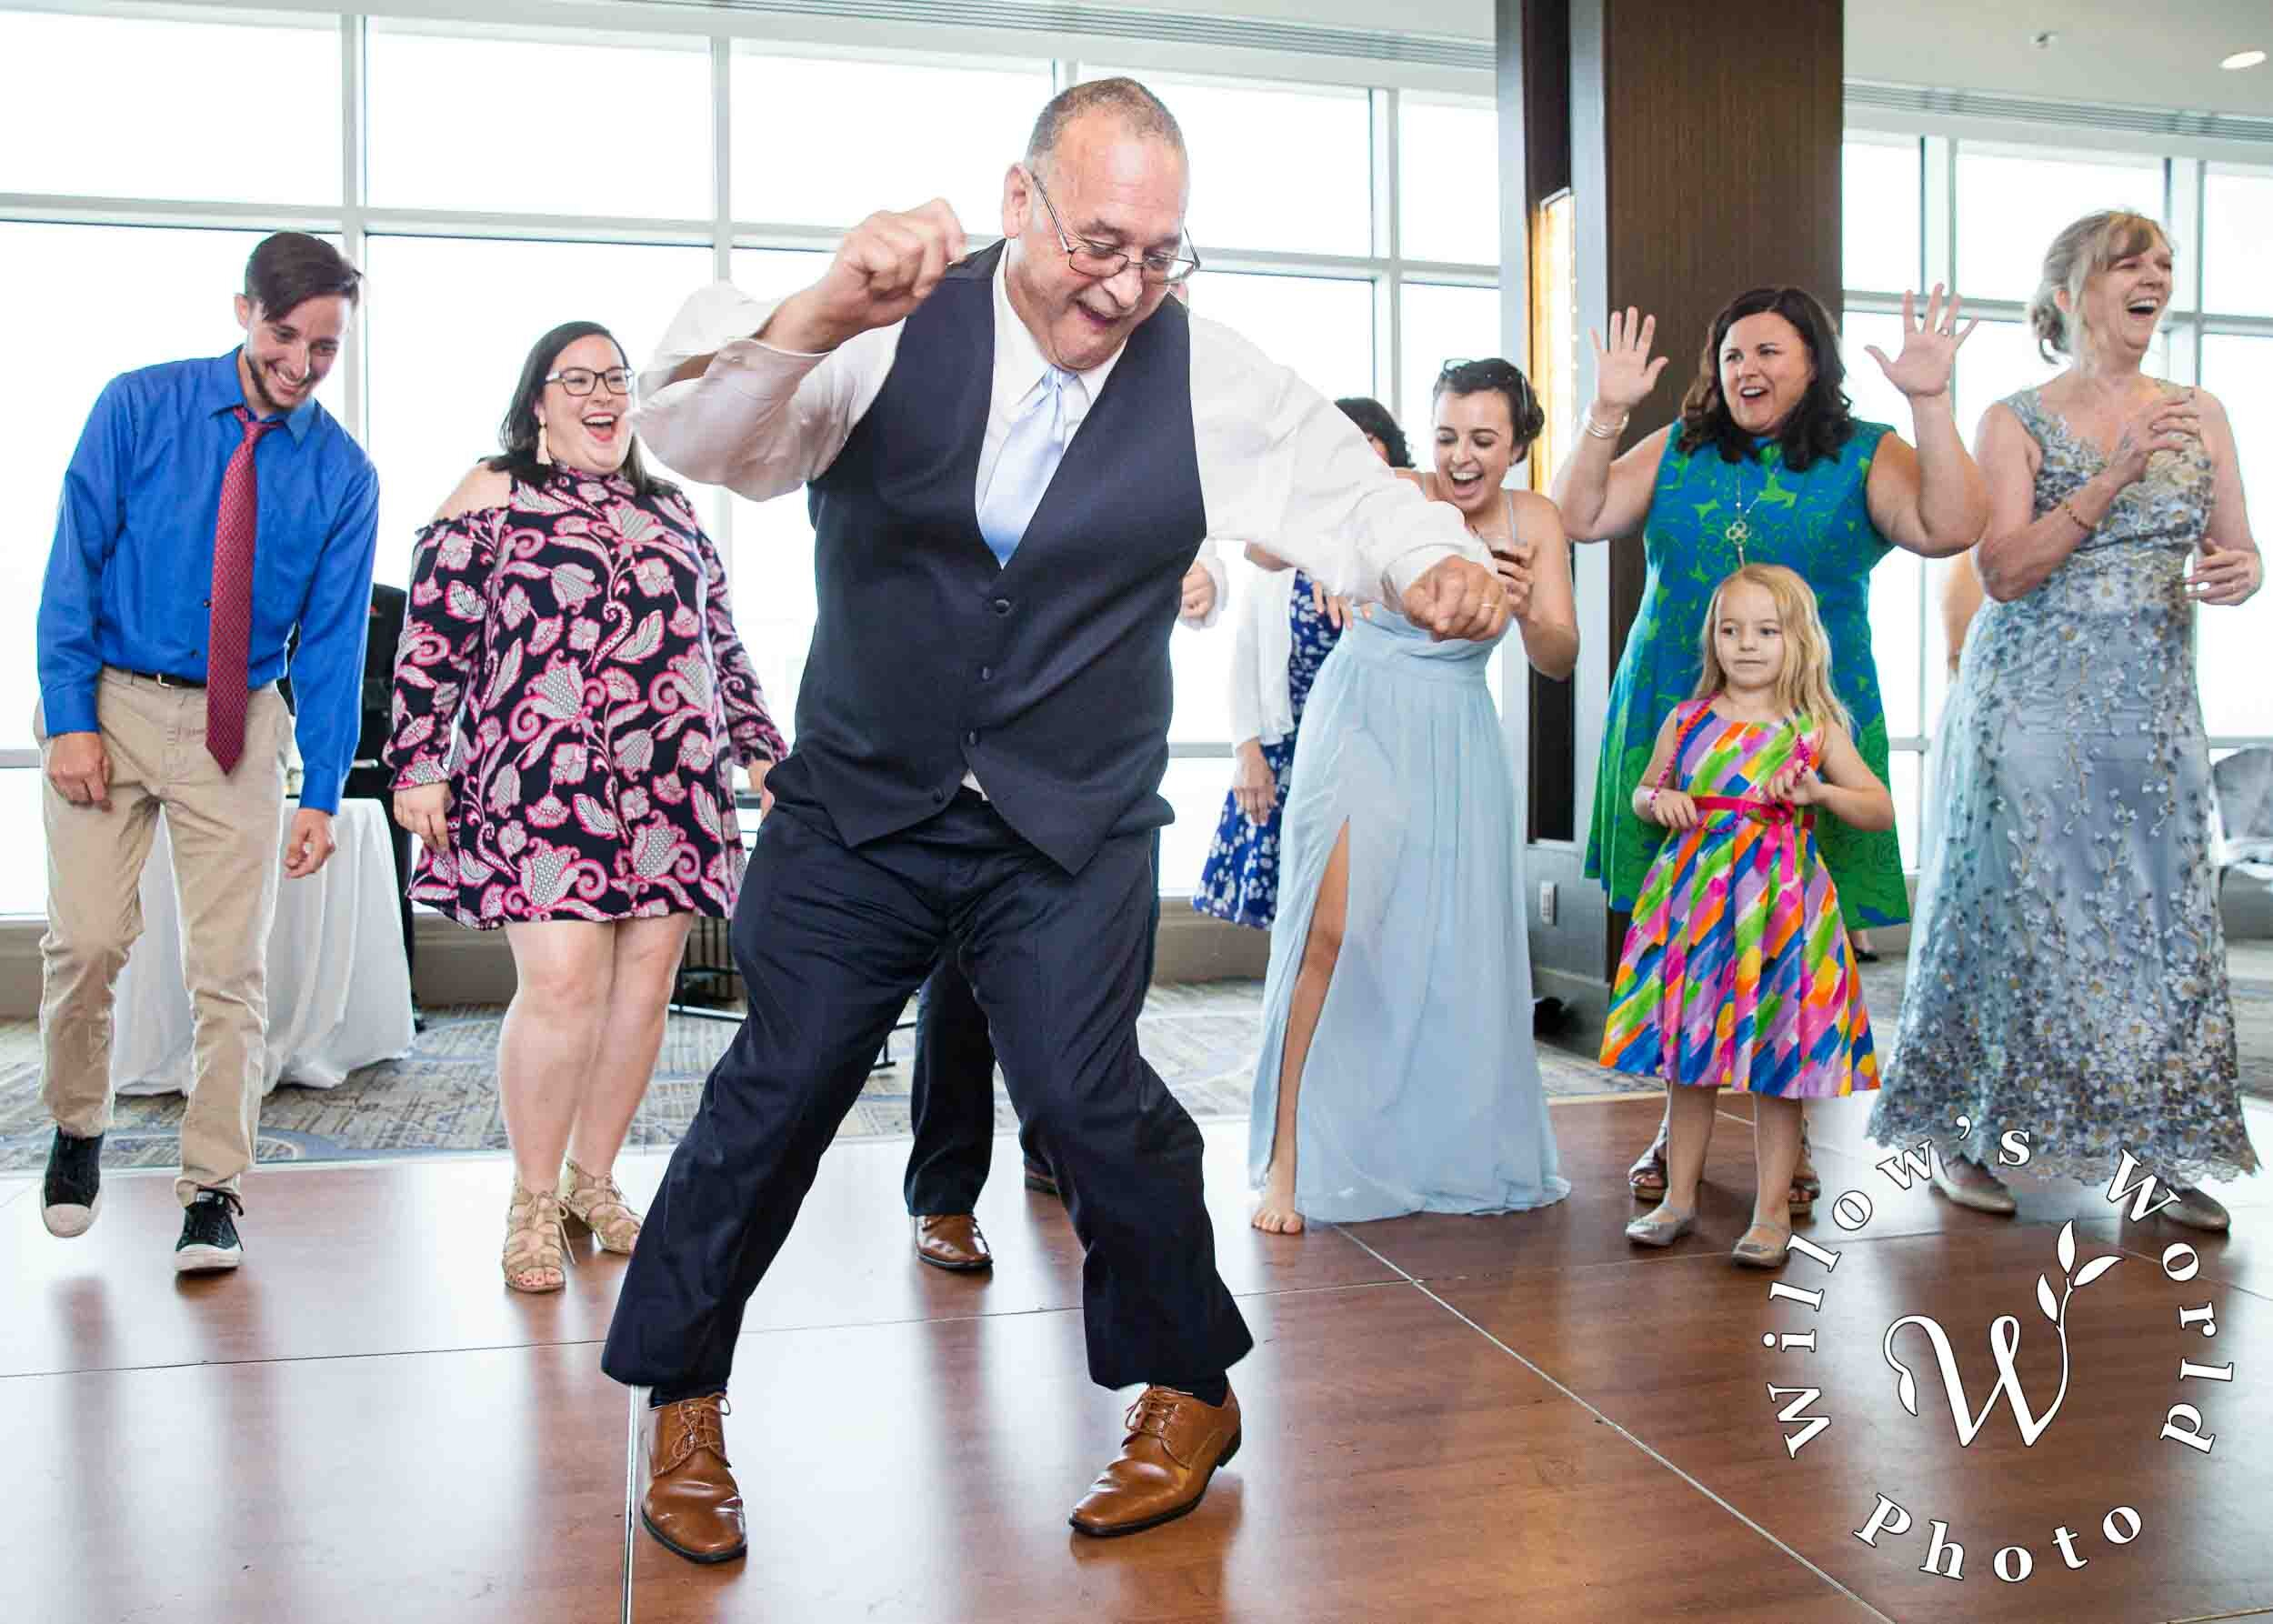 95-Marriott-Canal-St-New-Orleans-Wedding-Reception-Photo-Willows-World-Photo-8.jpg